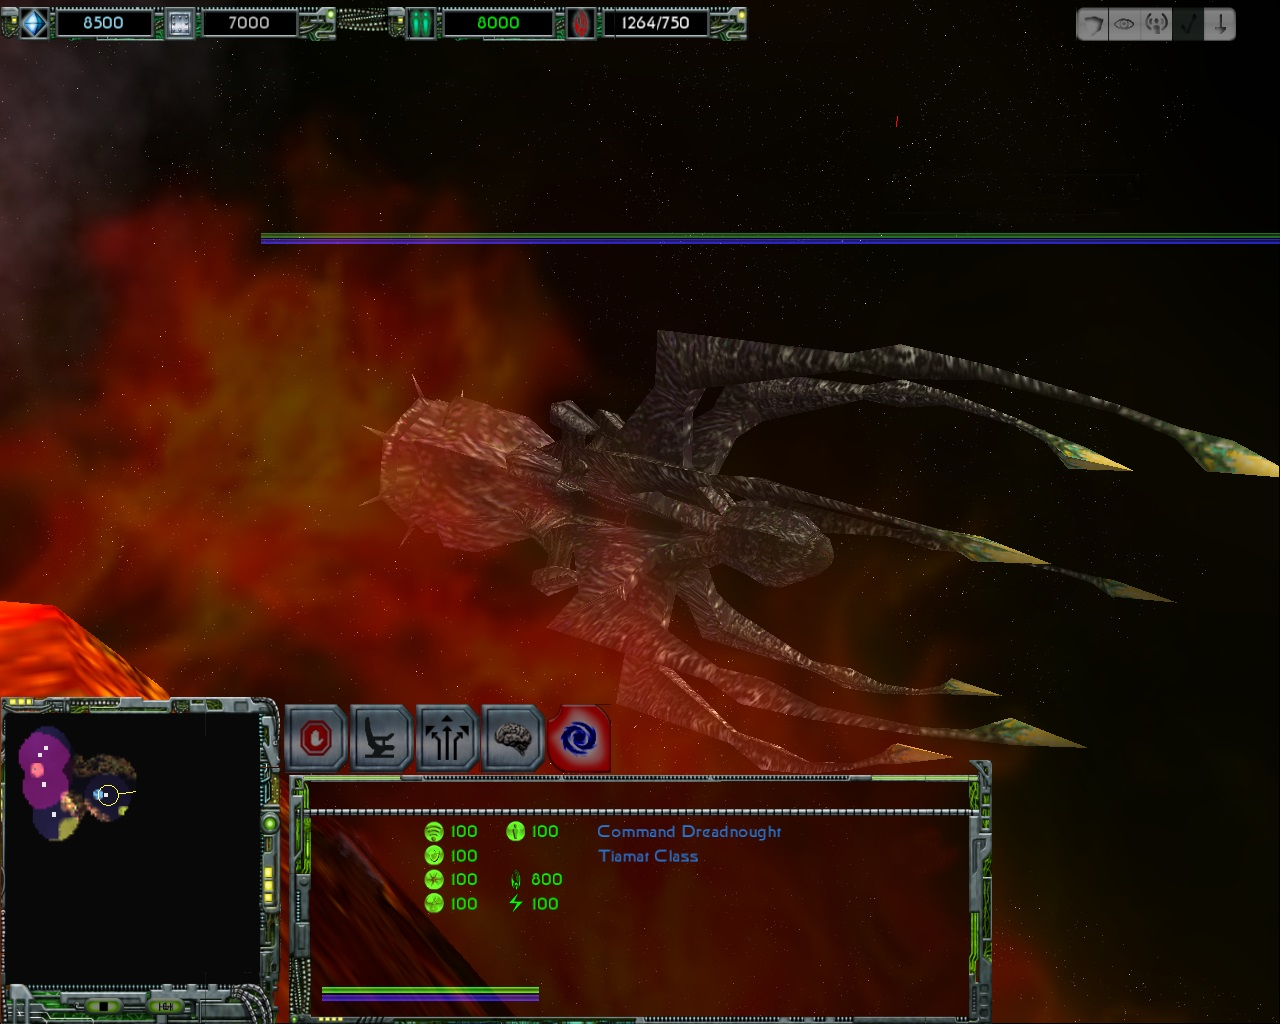 Nephilim added to star trek armada 2 mod wing commander cic for Wing commander